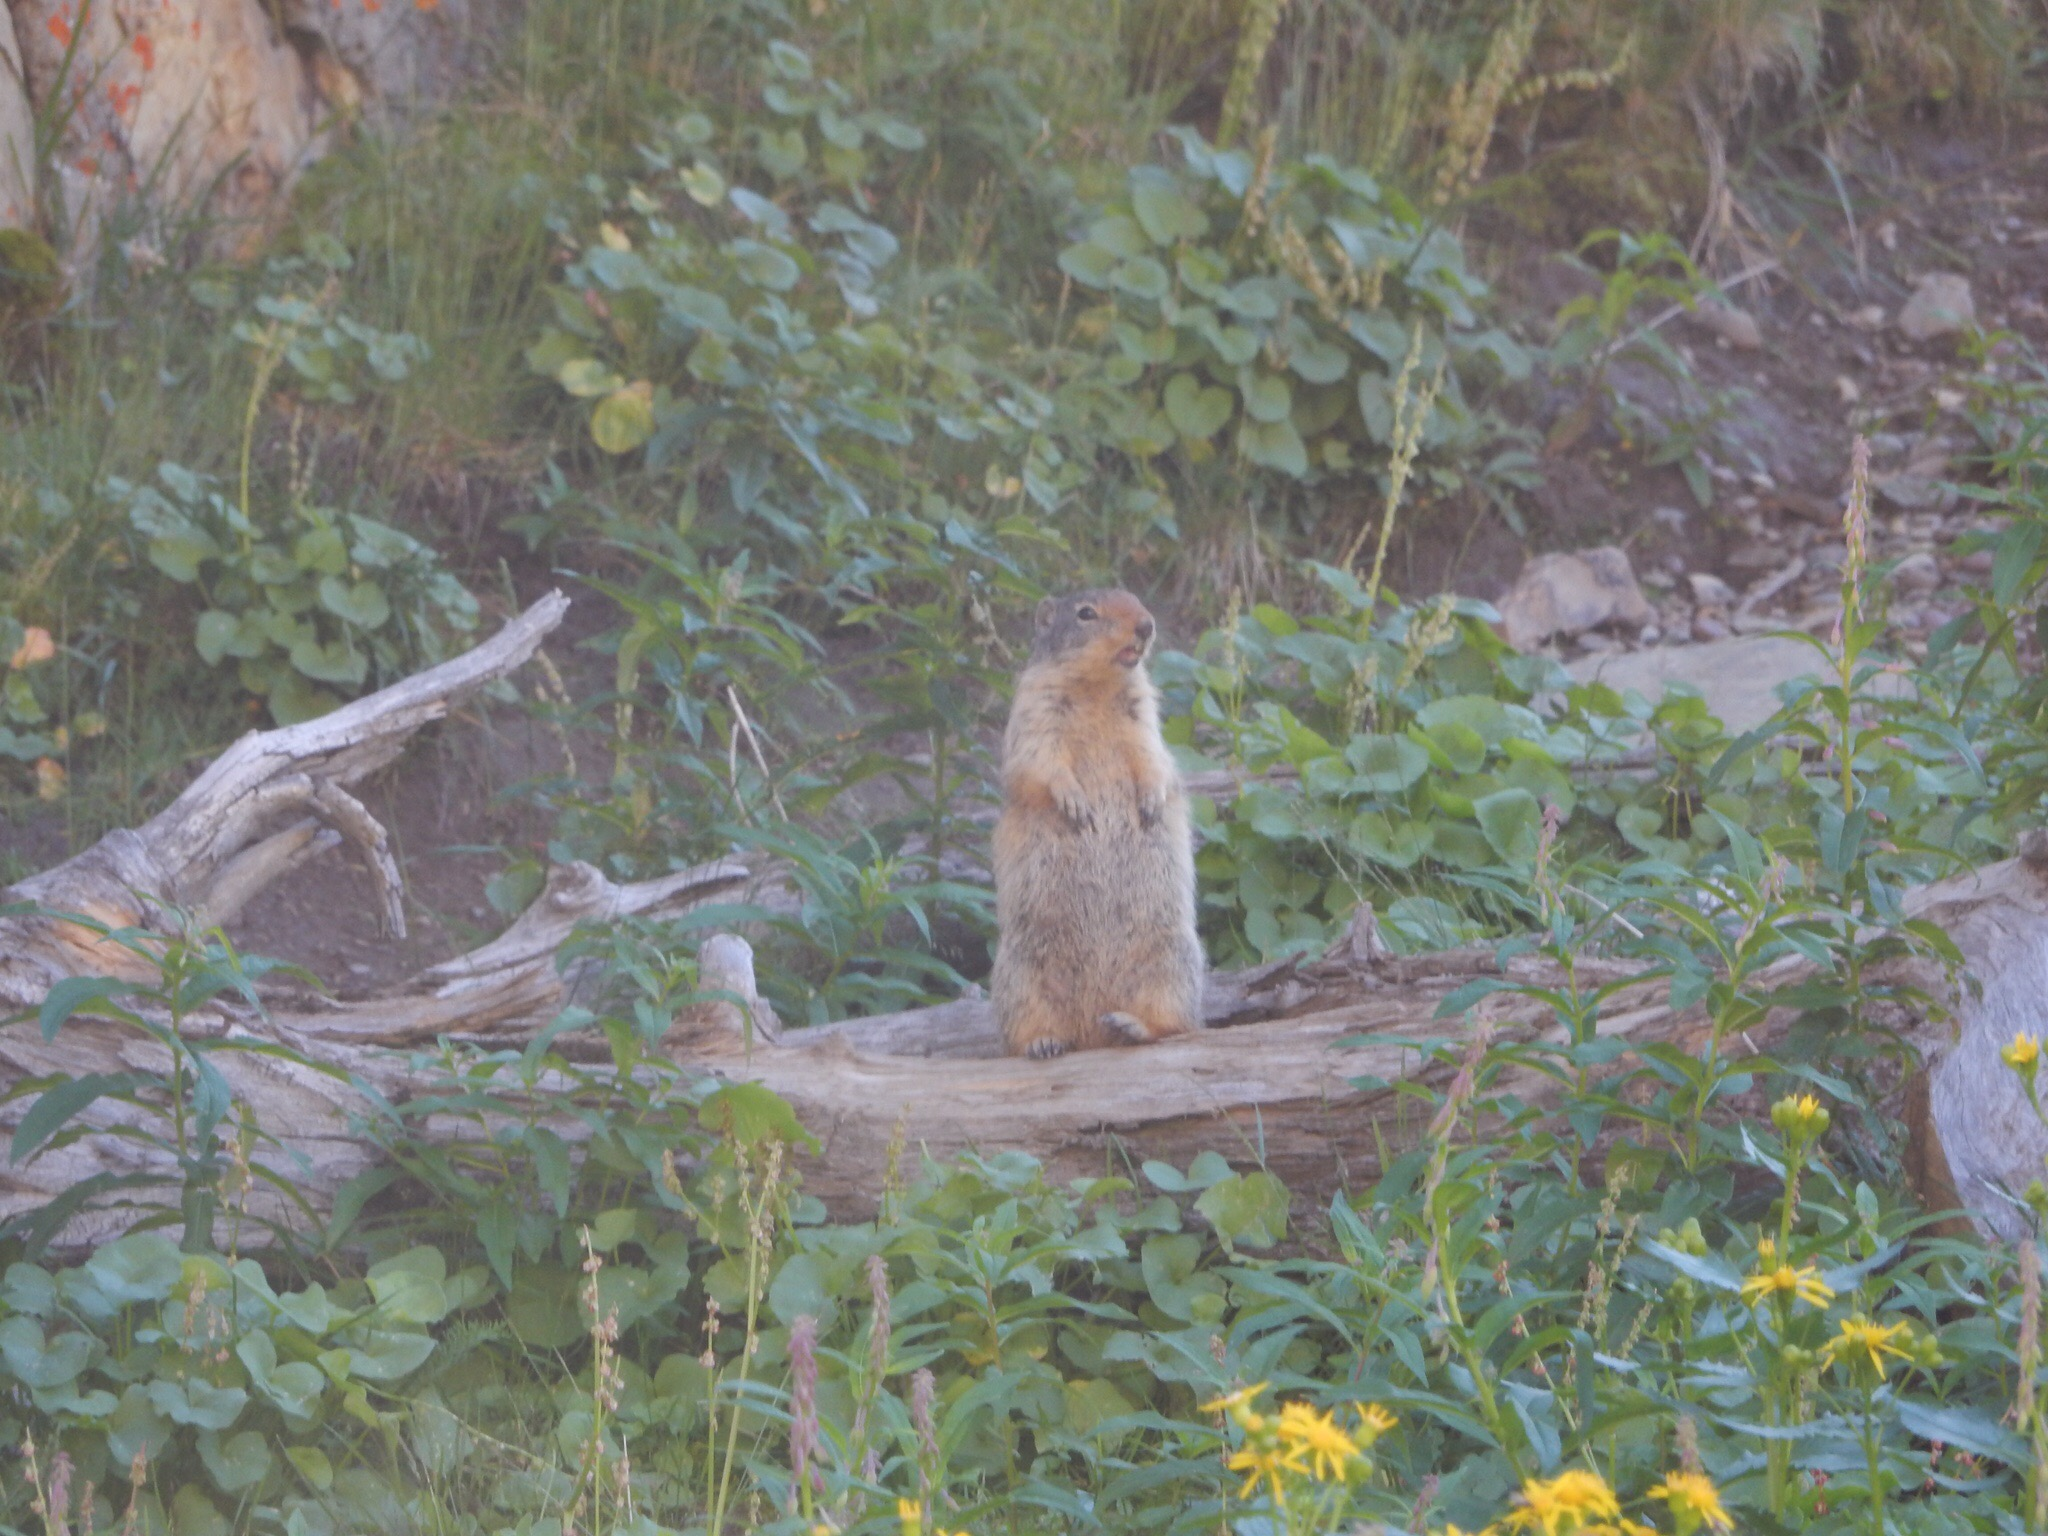 A pika takes offense to all the visitors at the Glacier NP visitor center.